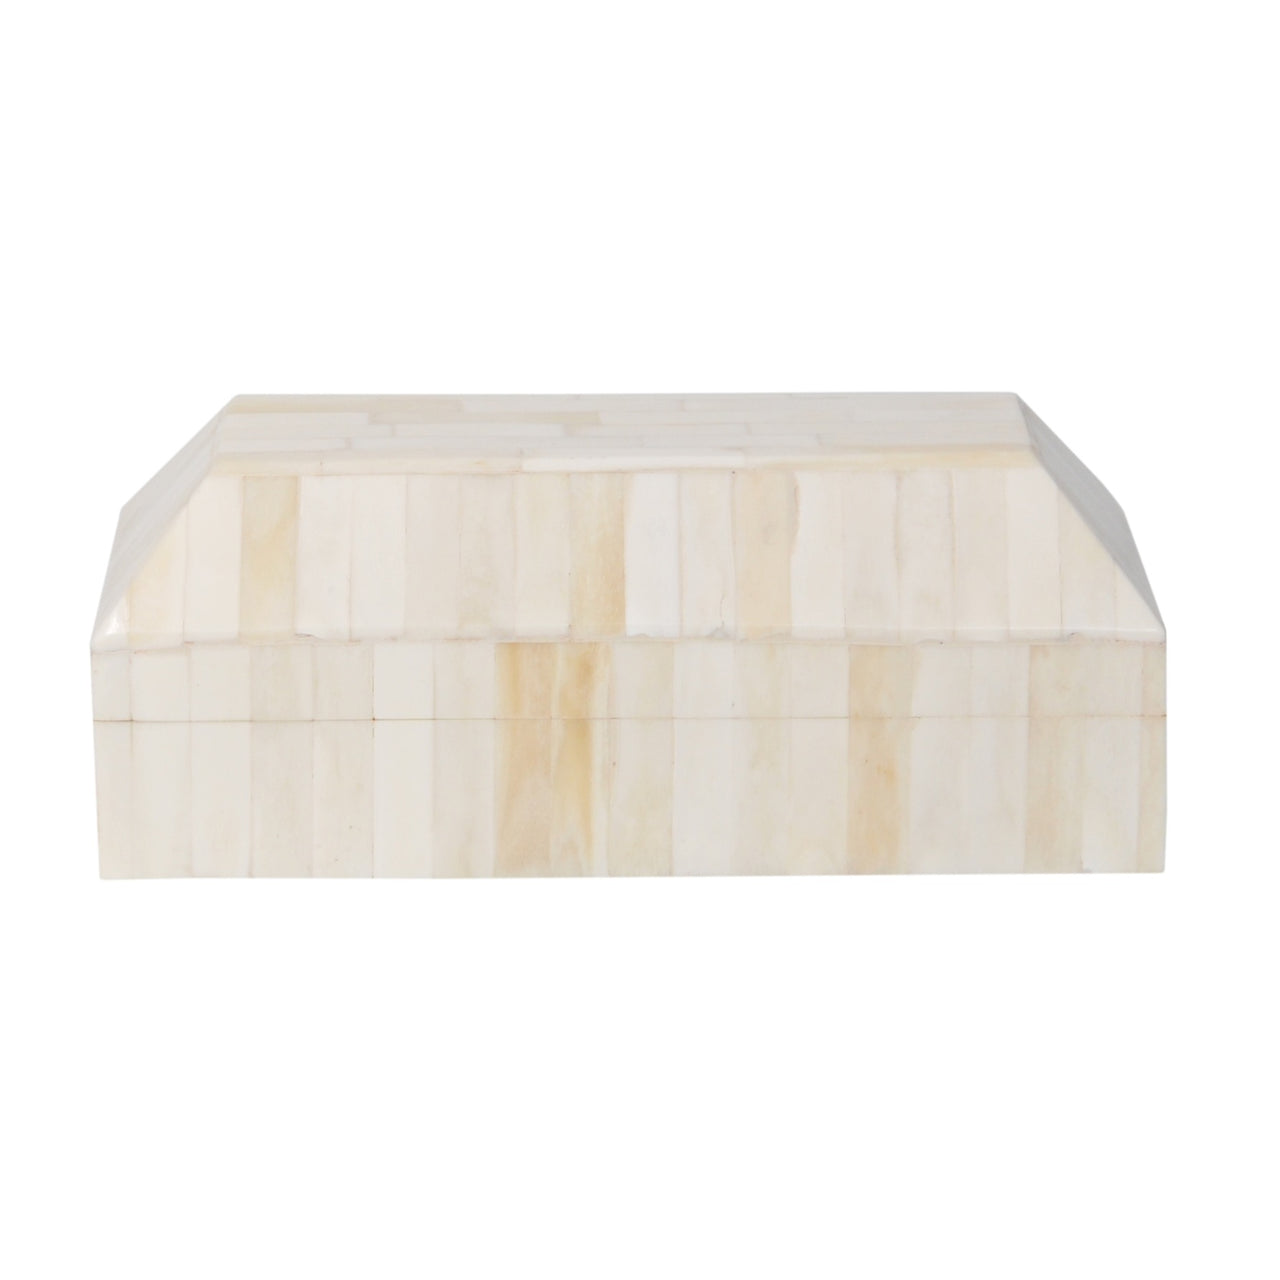 Bone In-Lay Box- Ivory